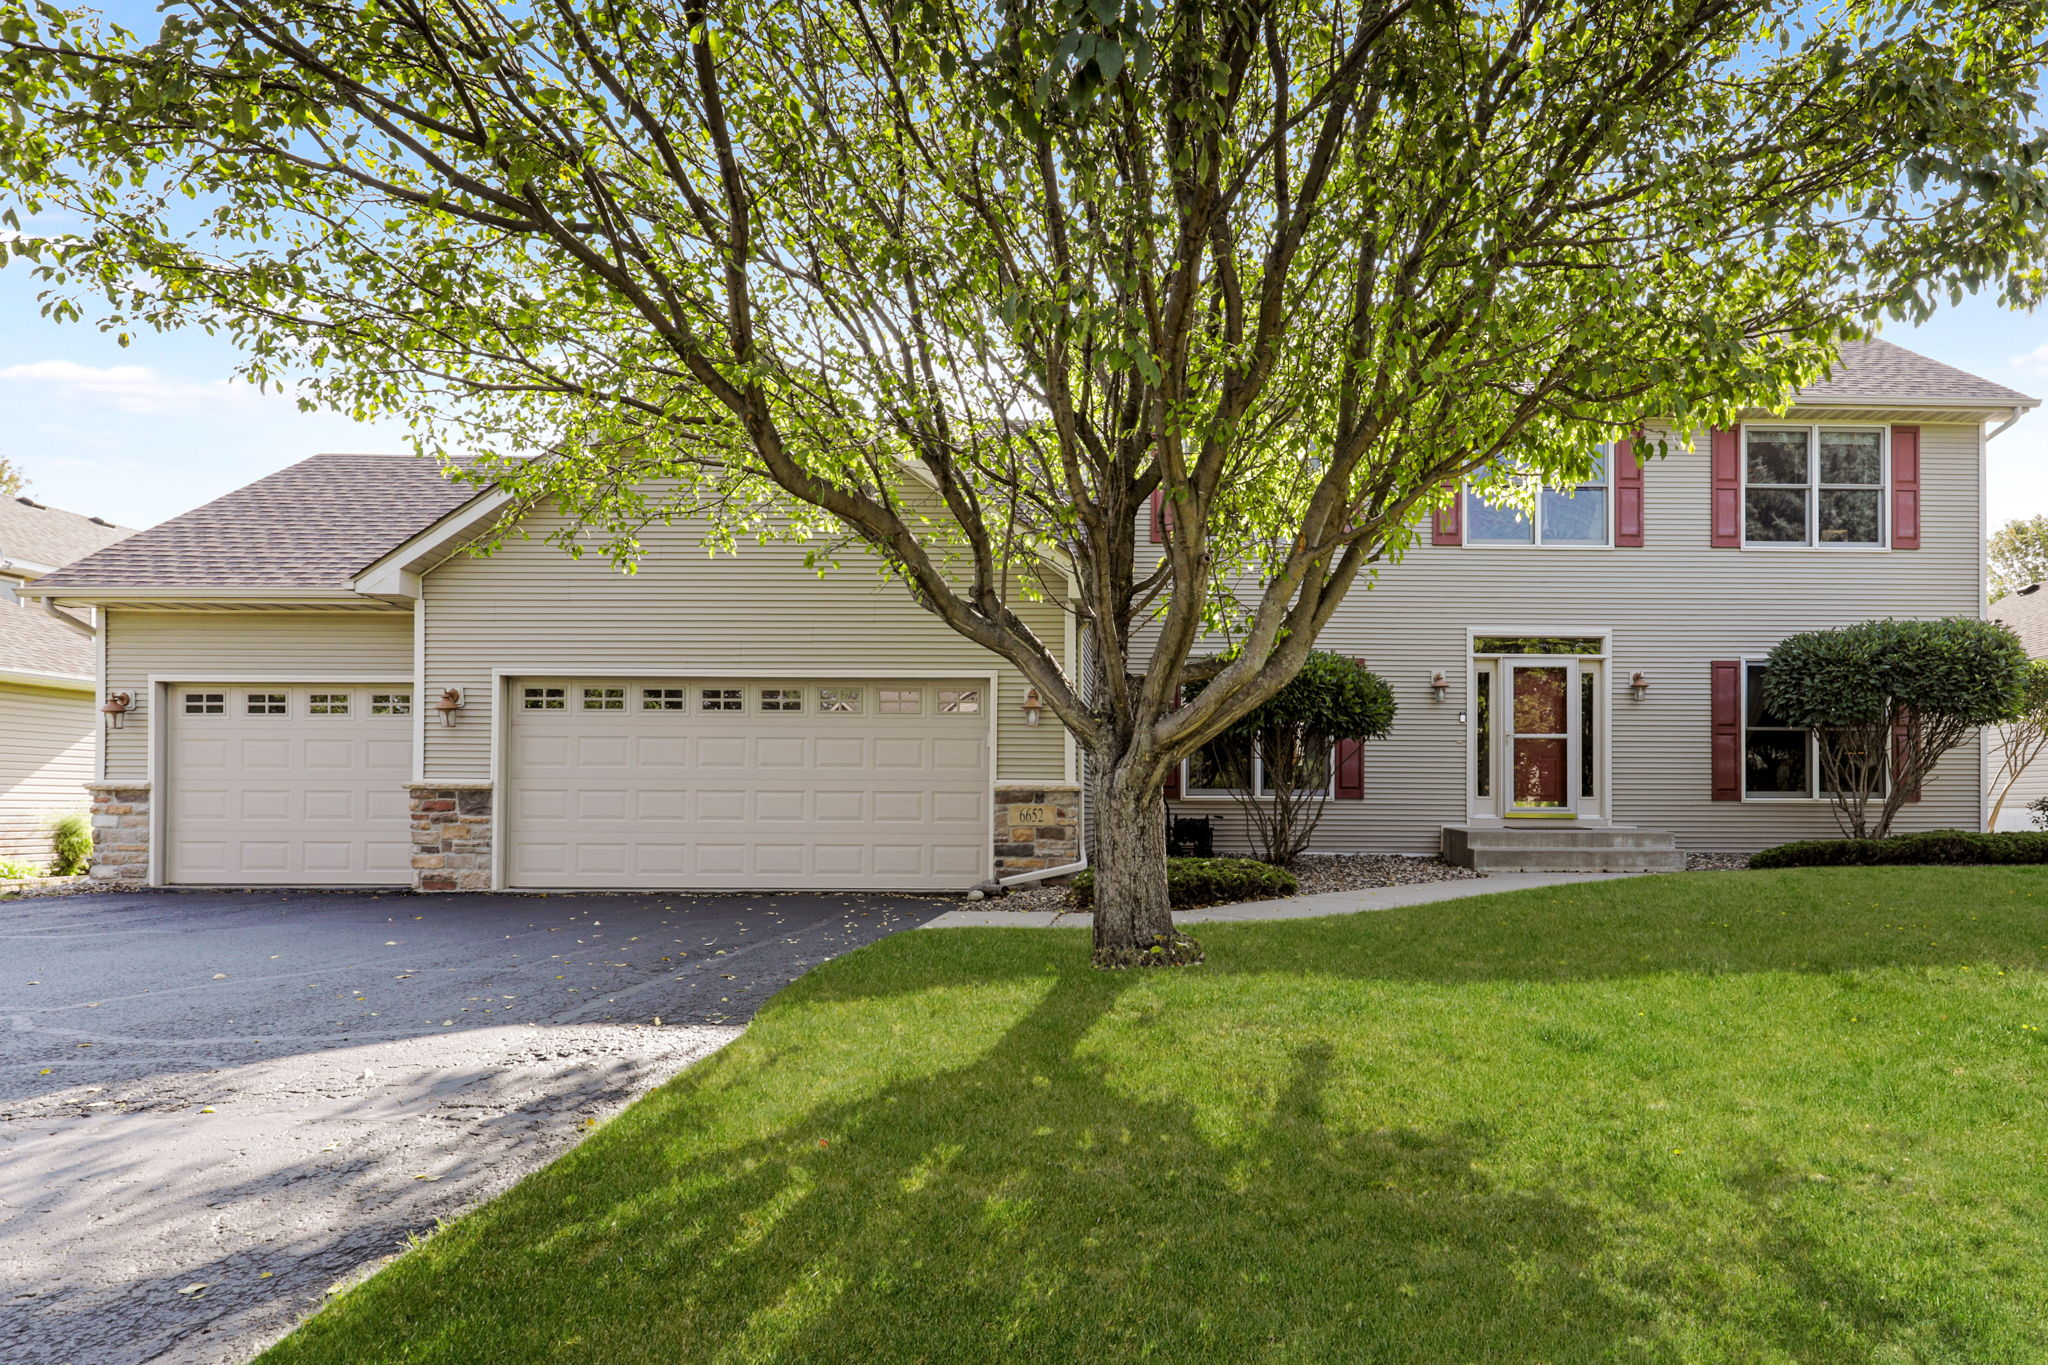 6652 Clearwater Creek Dr, Lino Lakes, MN 55038, USA Photo 1